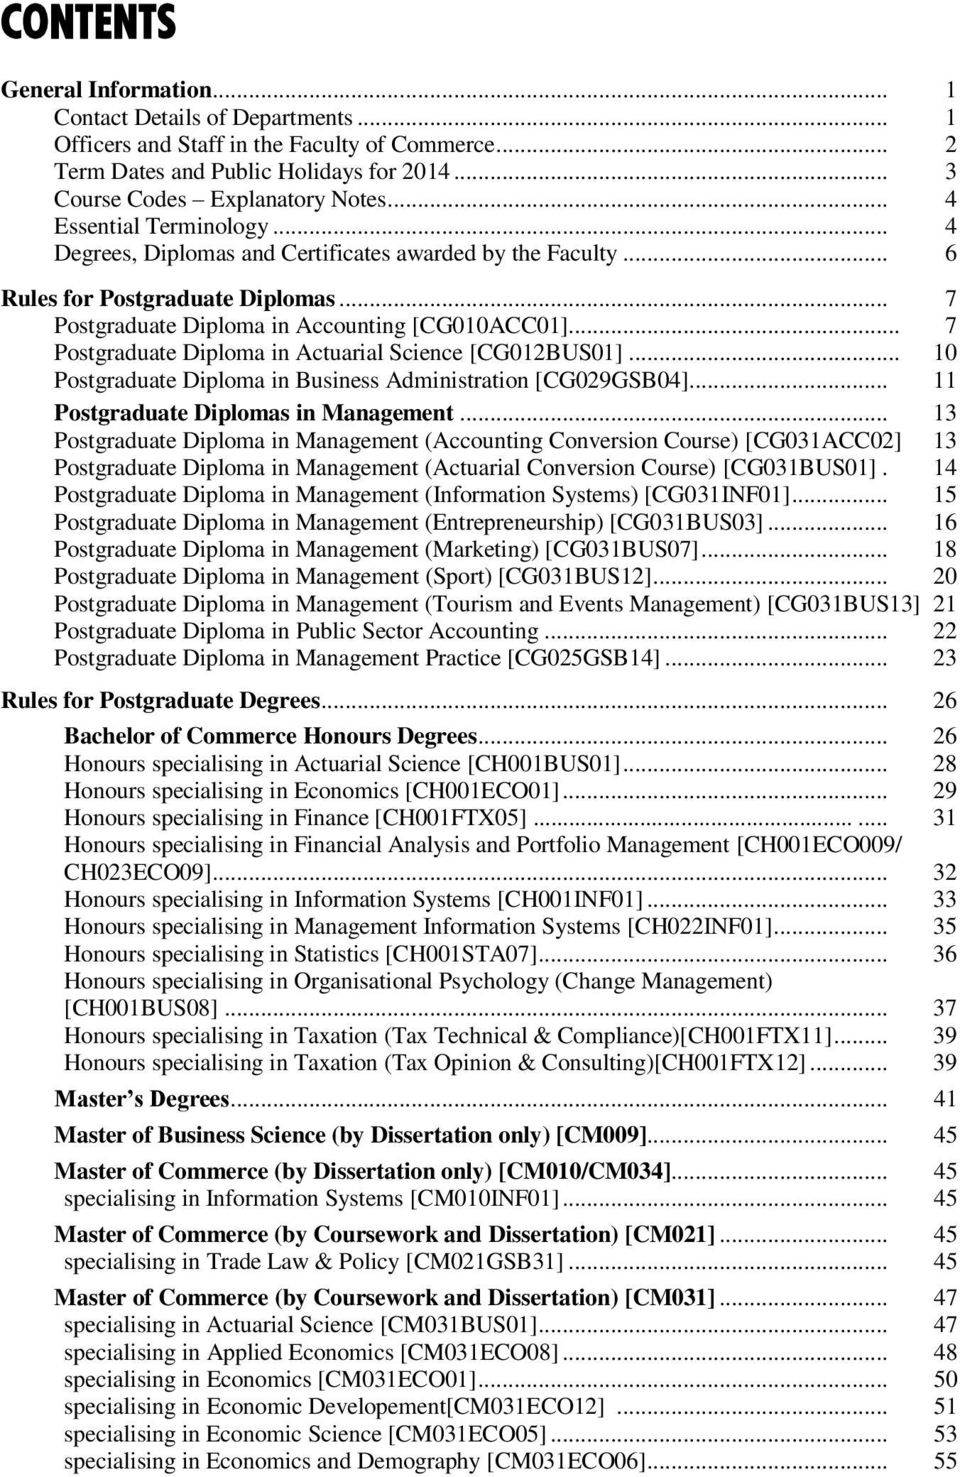 .. 7 Postgraduate Diploma in Actuarial Science [CG012BUS01]... 10 Postgraduate Diploma in Business Administration [CG029GSB04]... 11 Postgraduate Diplomas in Management.